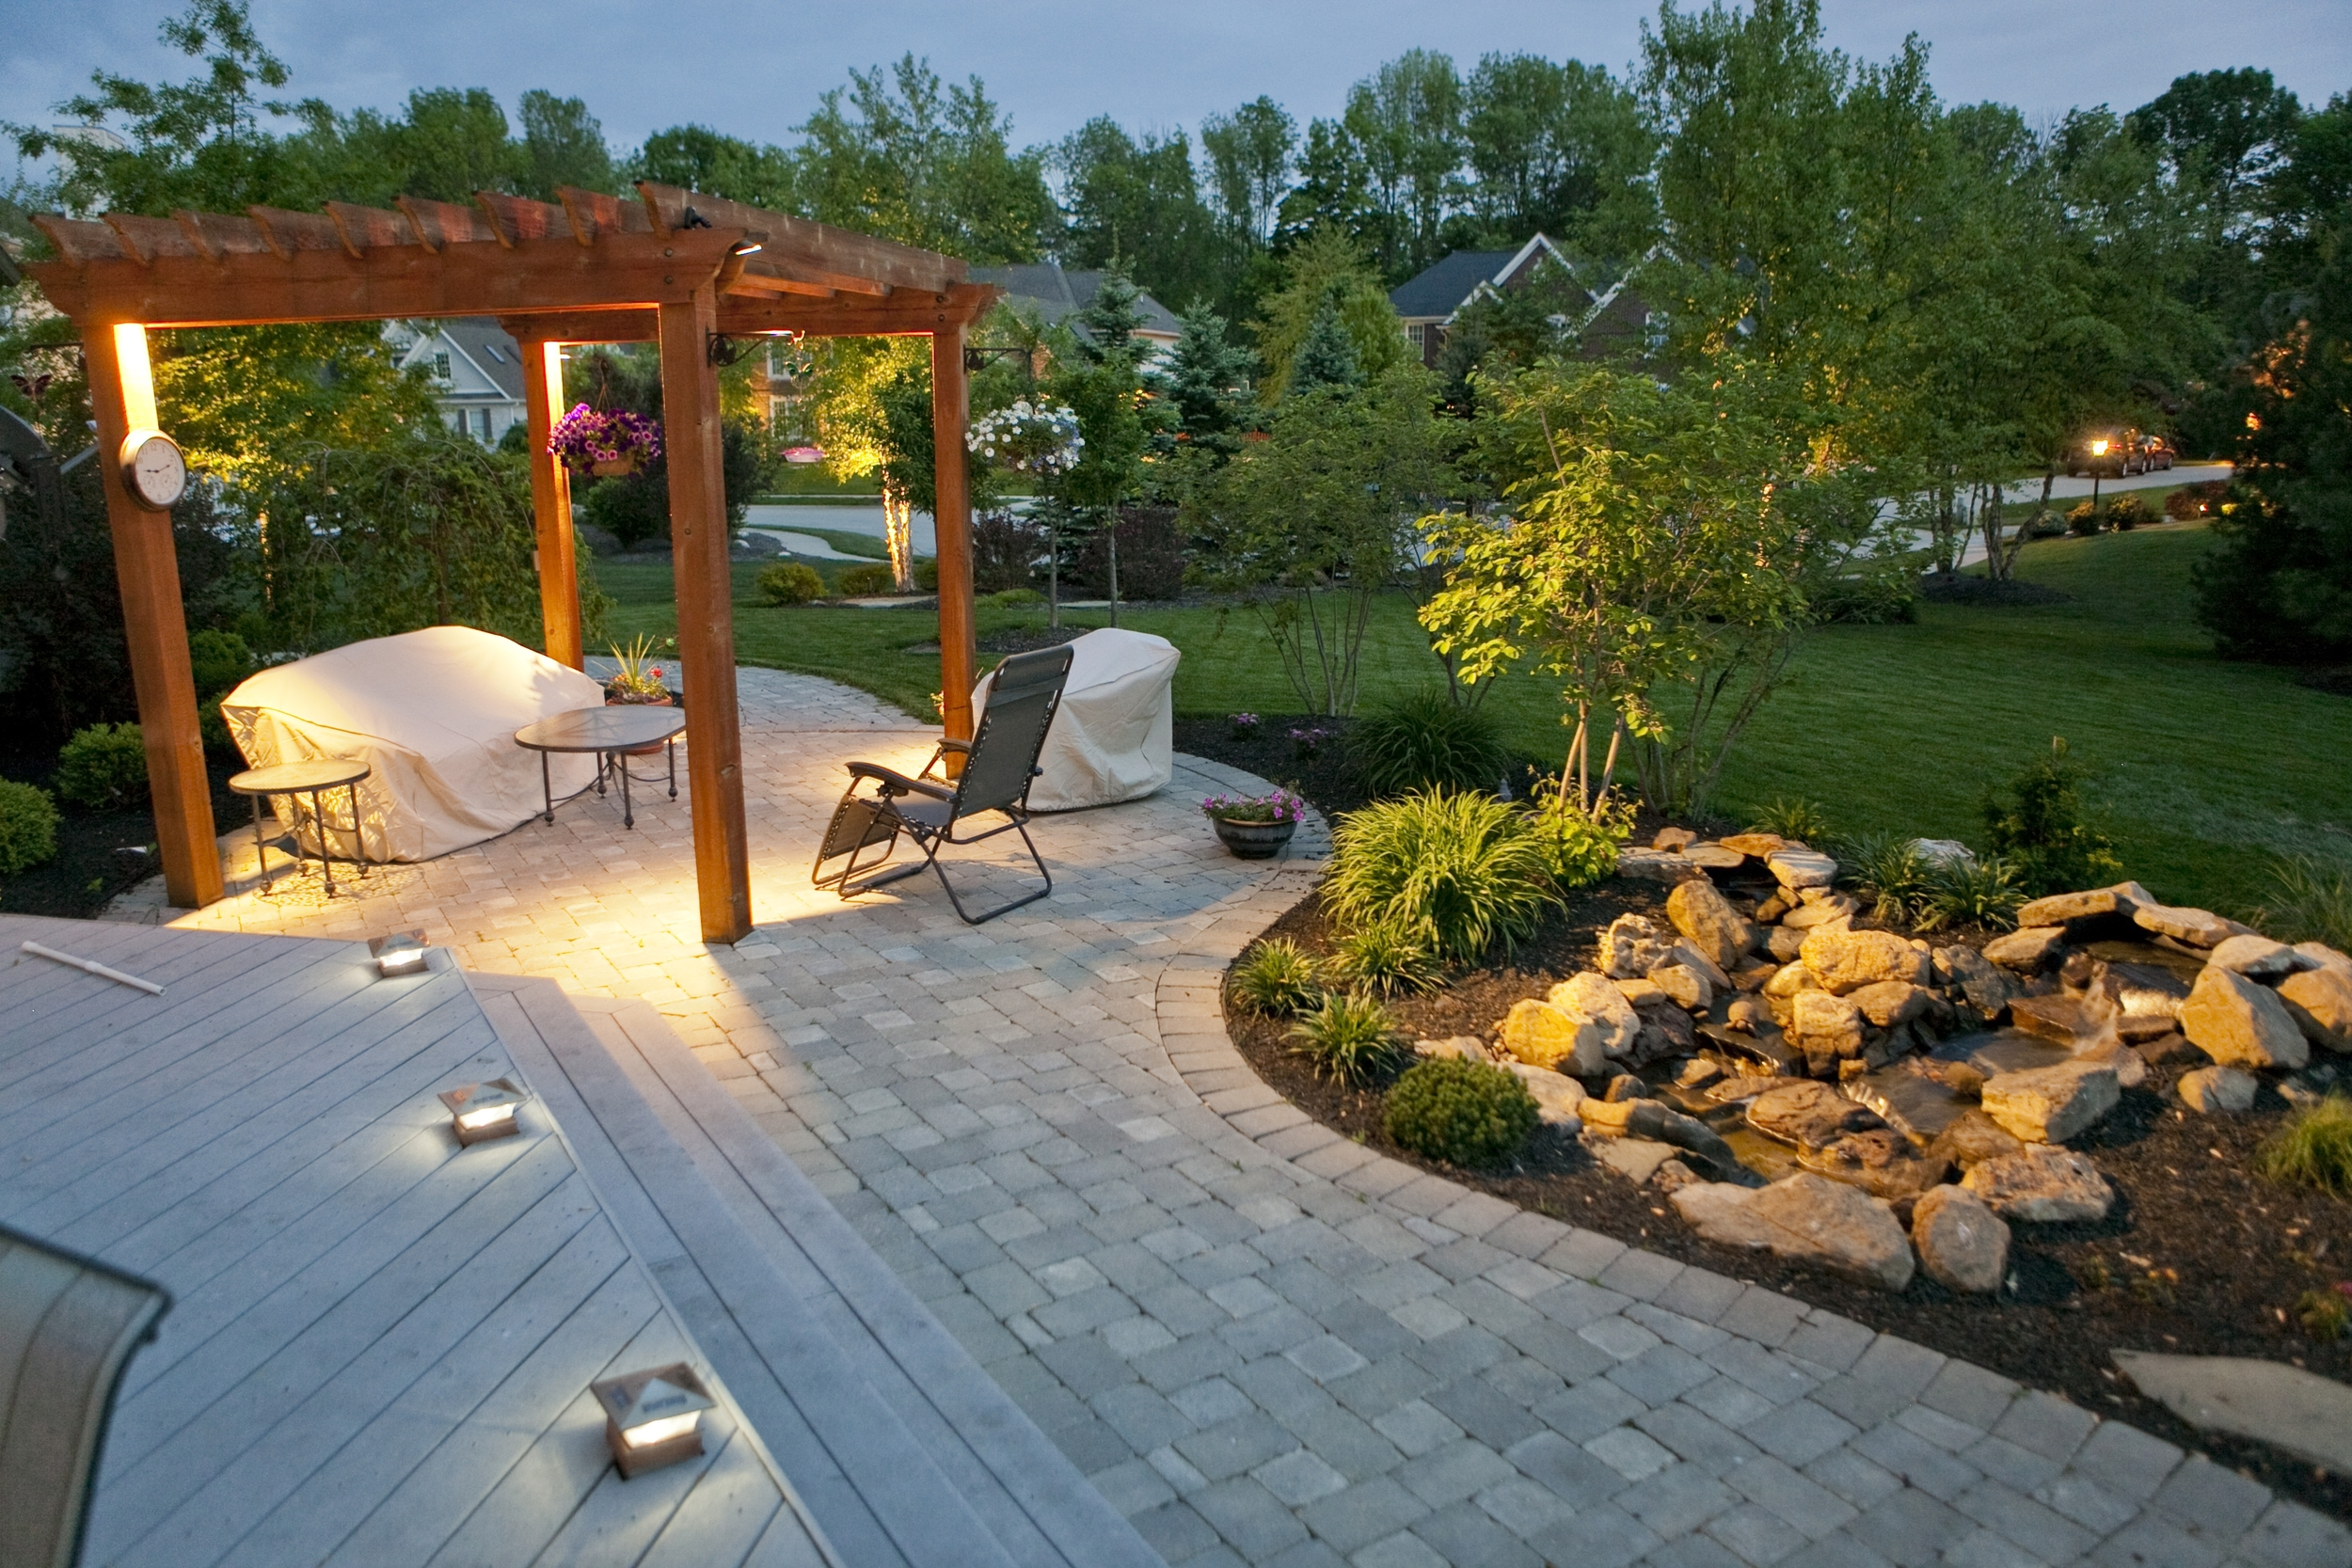 outdoor-lighting-brandon-smith-01.jpg